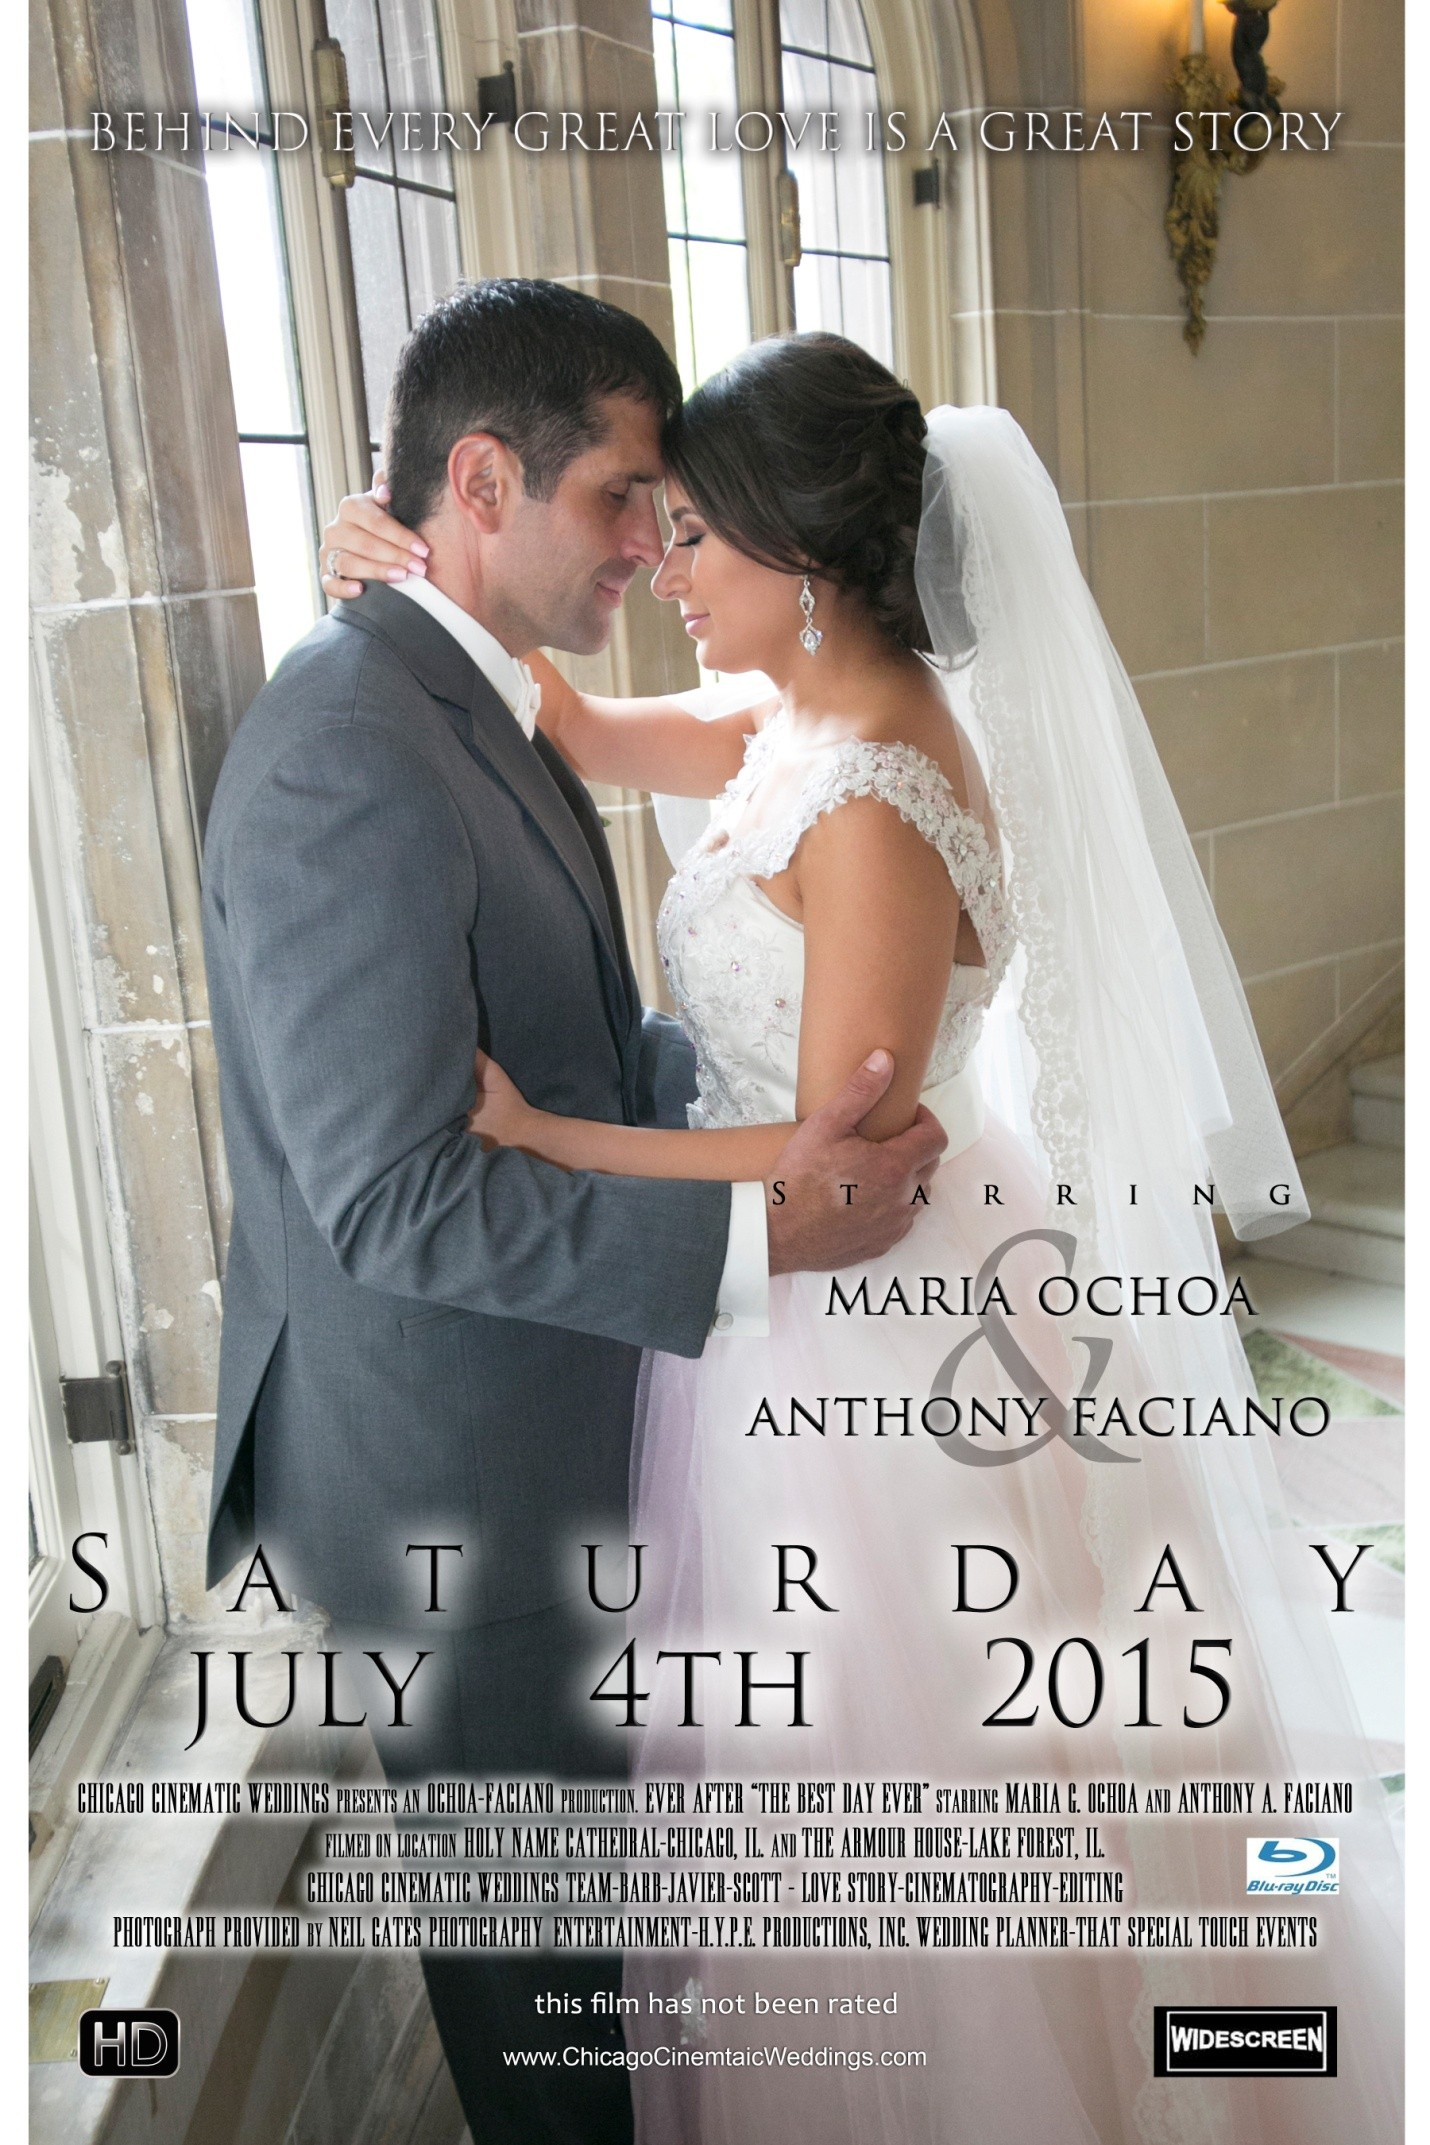 http://chicagocinematicweddings.com/wp-content/uploads/2016/06/mariaanthony-movie_poster.jpg